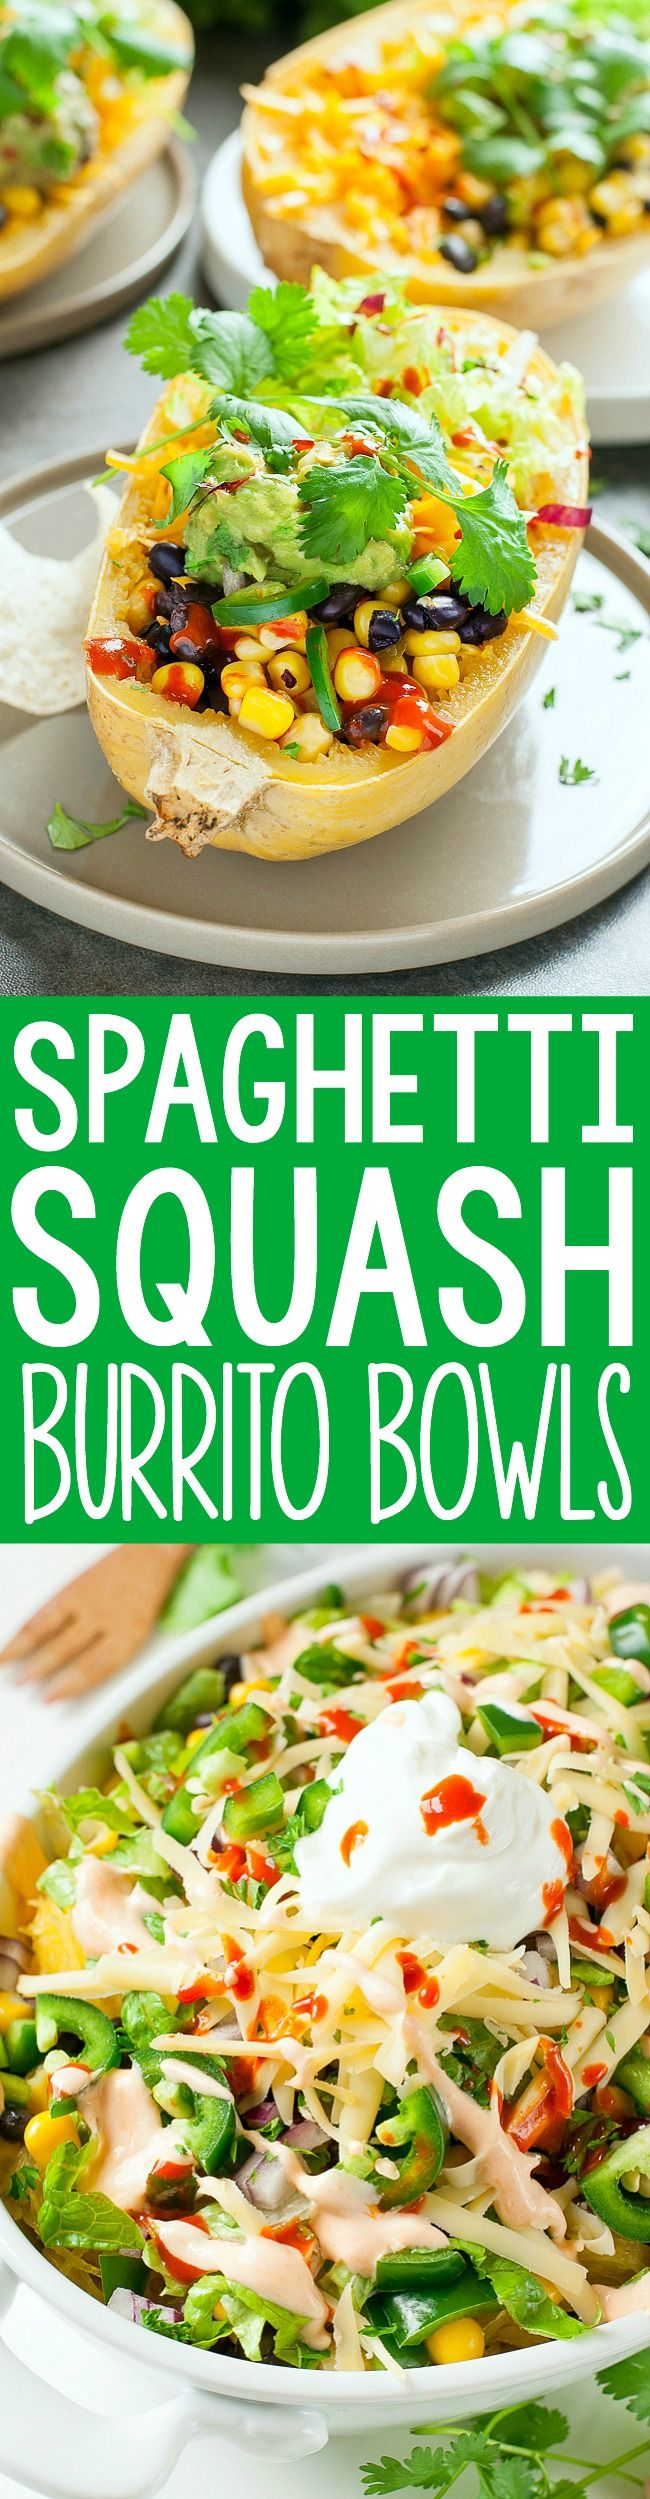 These Chipotle-Style Spaghetti Squash Burrito Bowls taste just like Chipotle's famed burrito bowls and are loaded with healthy whole food ingredients!